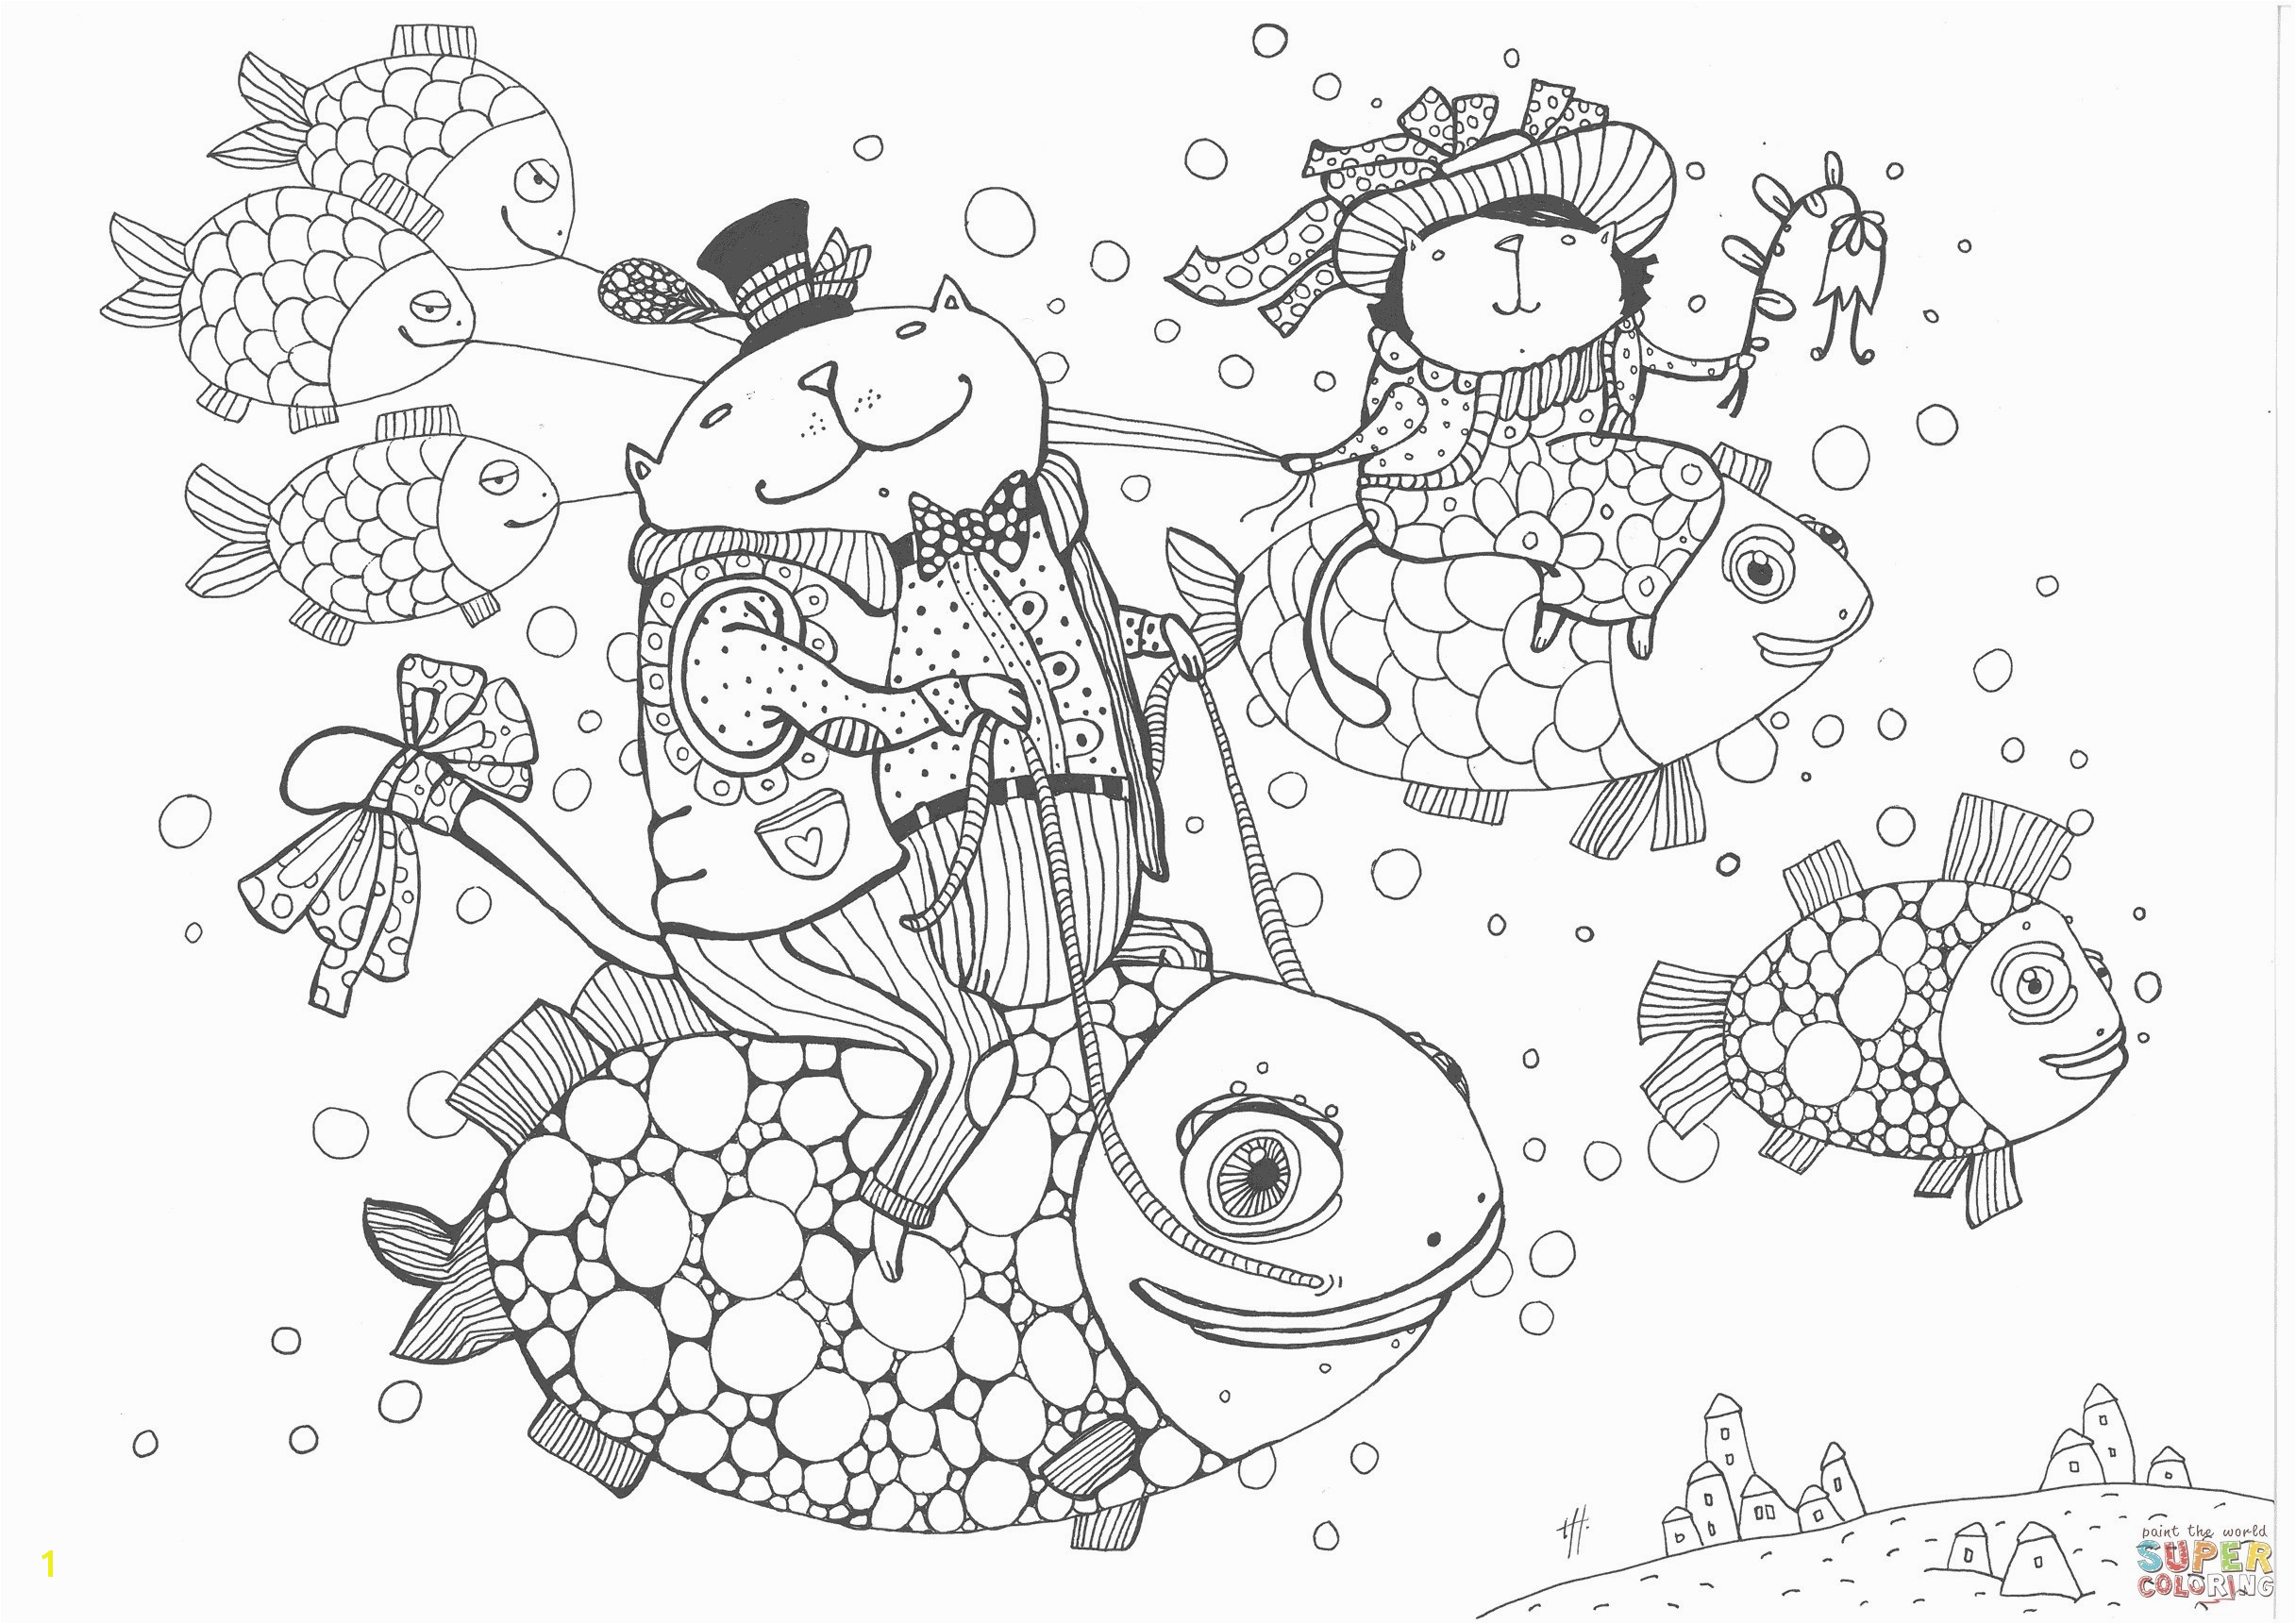 Thanksgiving Coloring Pages Inspirational s Cool Coloring Page Unique Witch Coloring Pages New Crayola Pages 0d